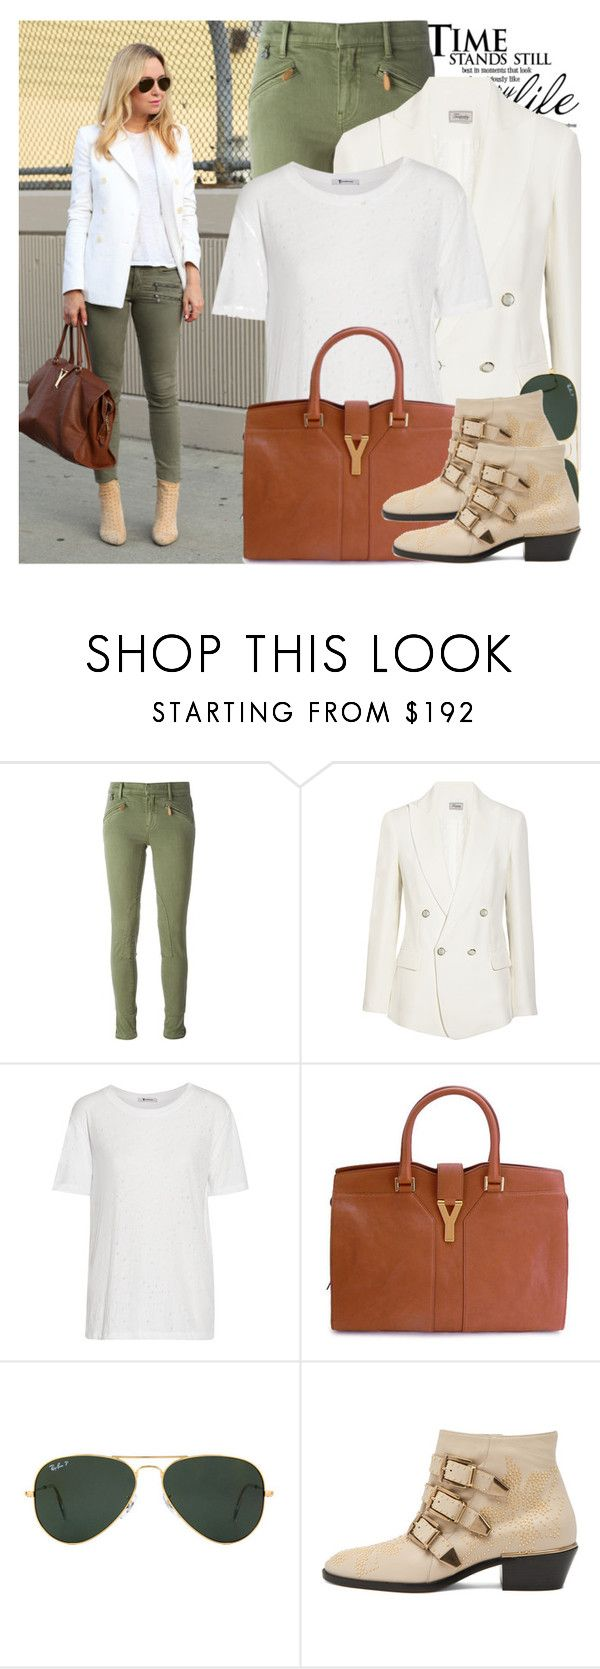 """""""2206. Blogger Style: Brooklyn Blonde"""" by chocolatepumma ❤ liked on Polyvore featuring moda, Polo Ralph Lauren, Temperley London, T By Alexander Wang, Yves Saint Laurent, Ray-Ban, Chloé, YSL, BloggerStyle y citylook"""